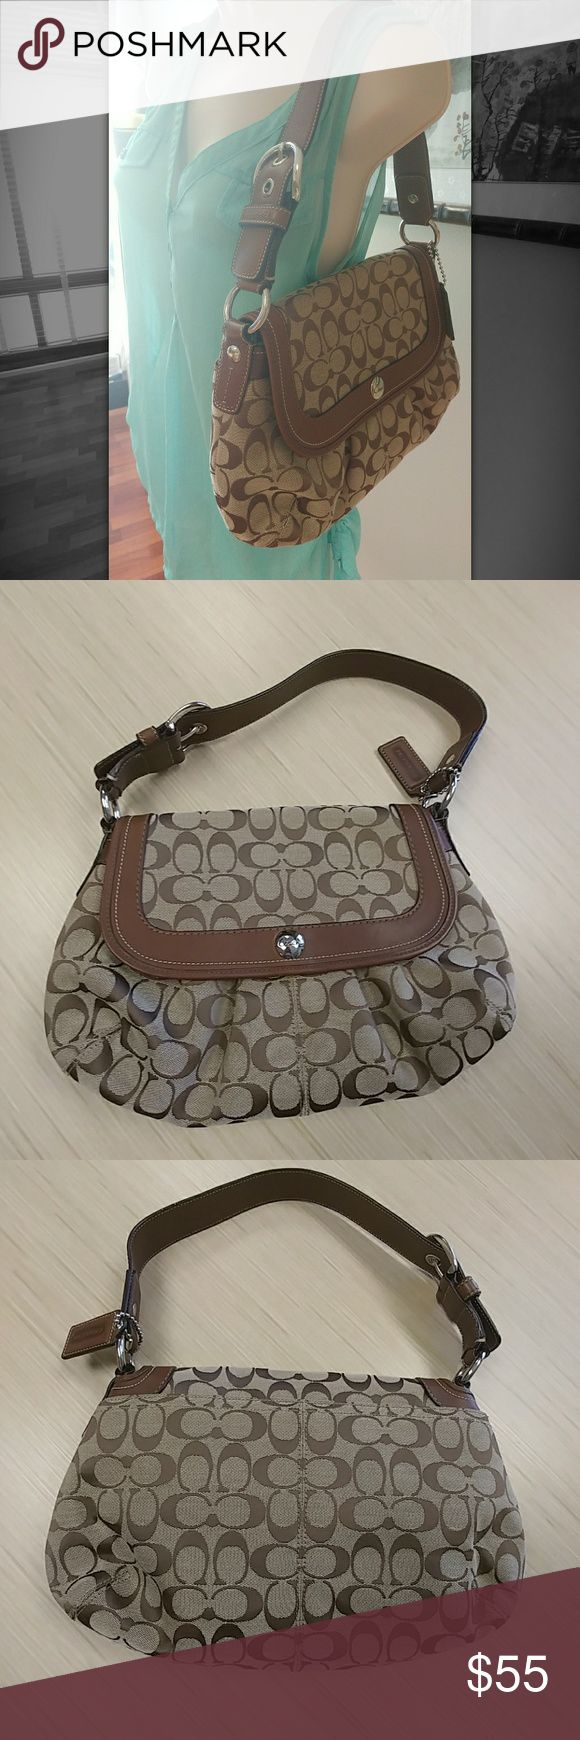 👜Retro Classic Brown Coach purse Retro Classic Brown Coach purse, excellent pre-loved condition. Own this beauty for a steal!  30% off a bundle of three or more items Everything is negotiable Smoke free home Pet free home All items deserve a 2nd chance at happiness Currently not trading Coach Bags Shoulder Bags